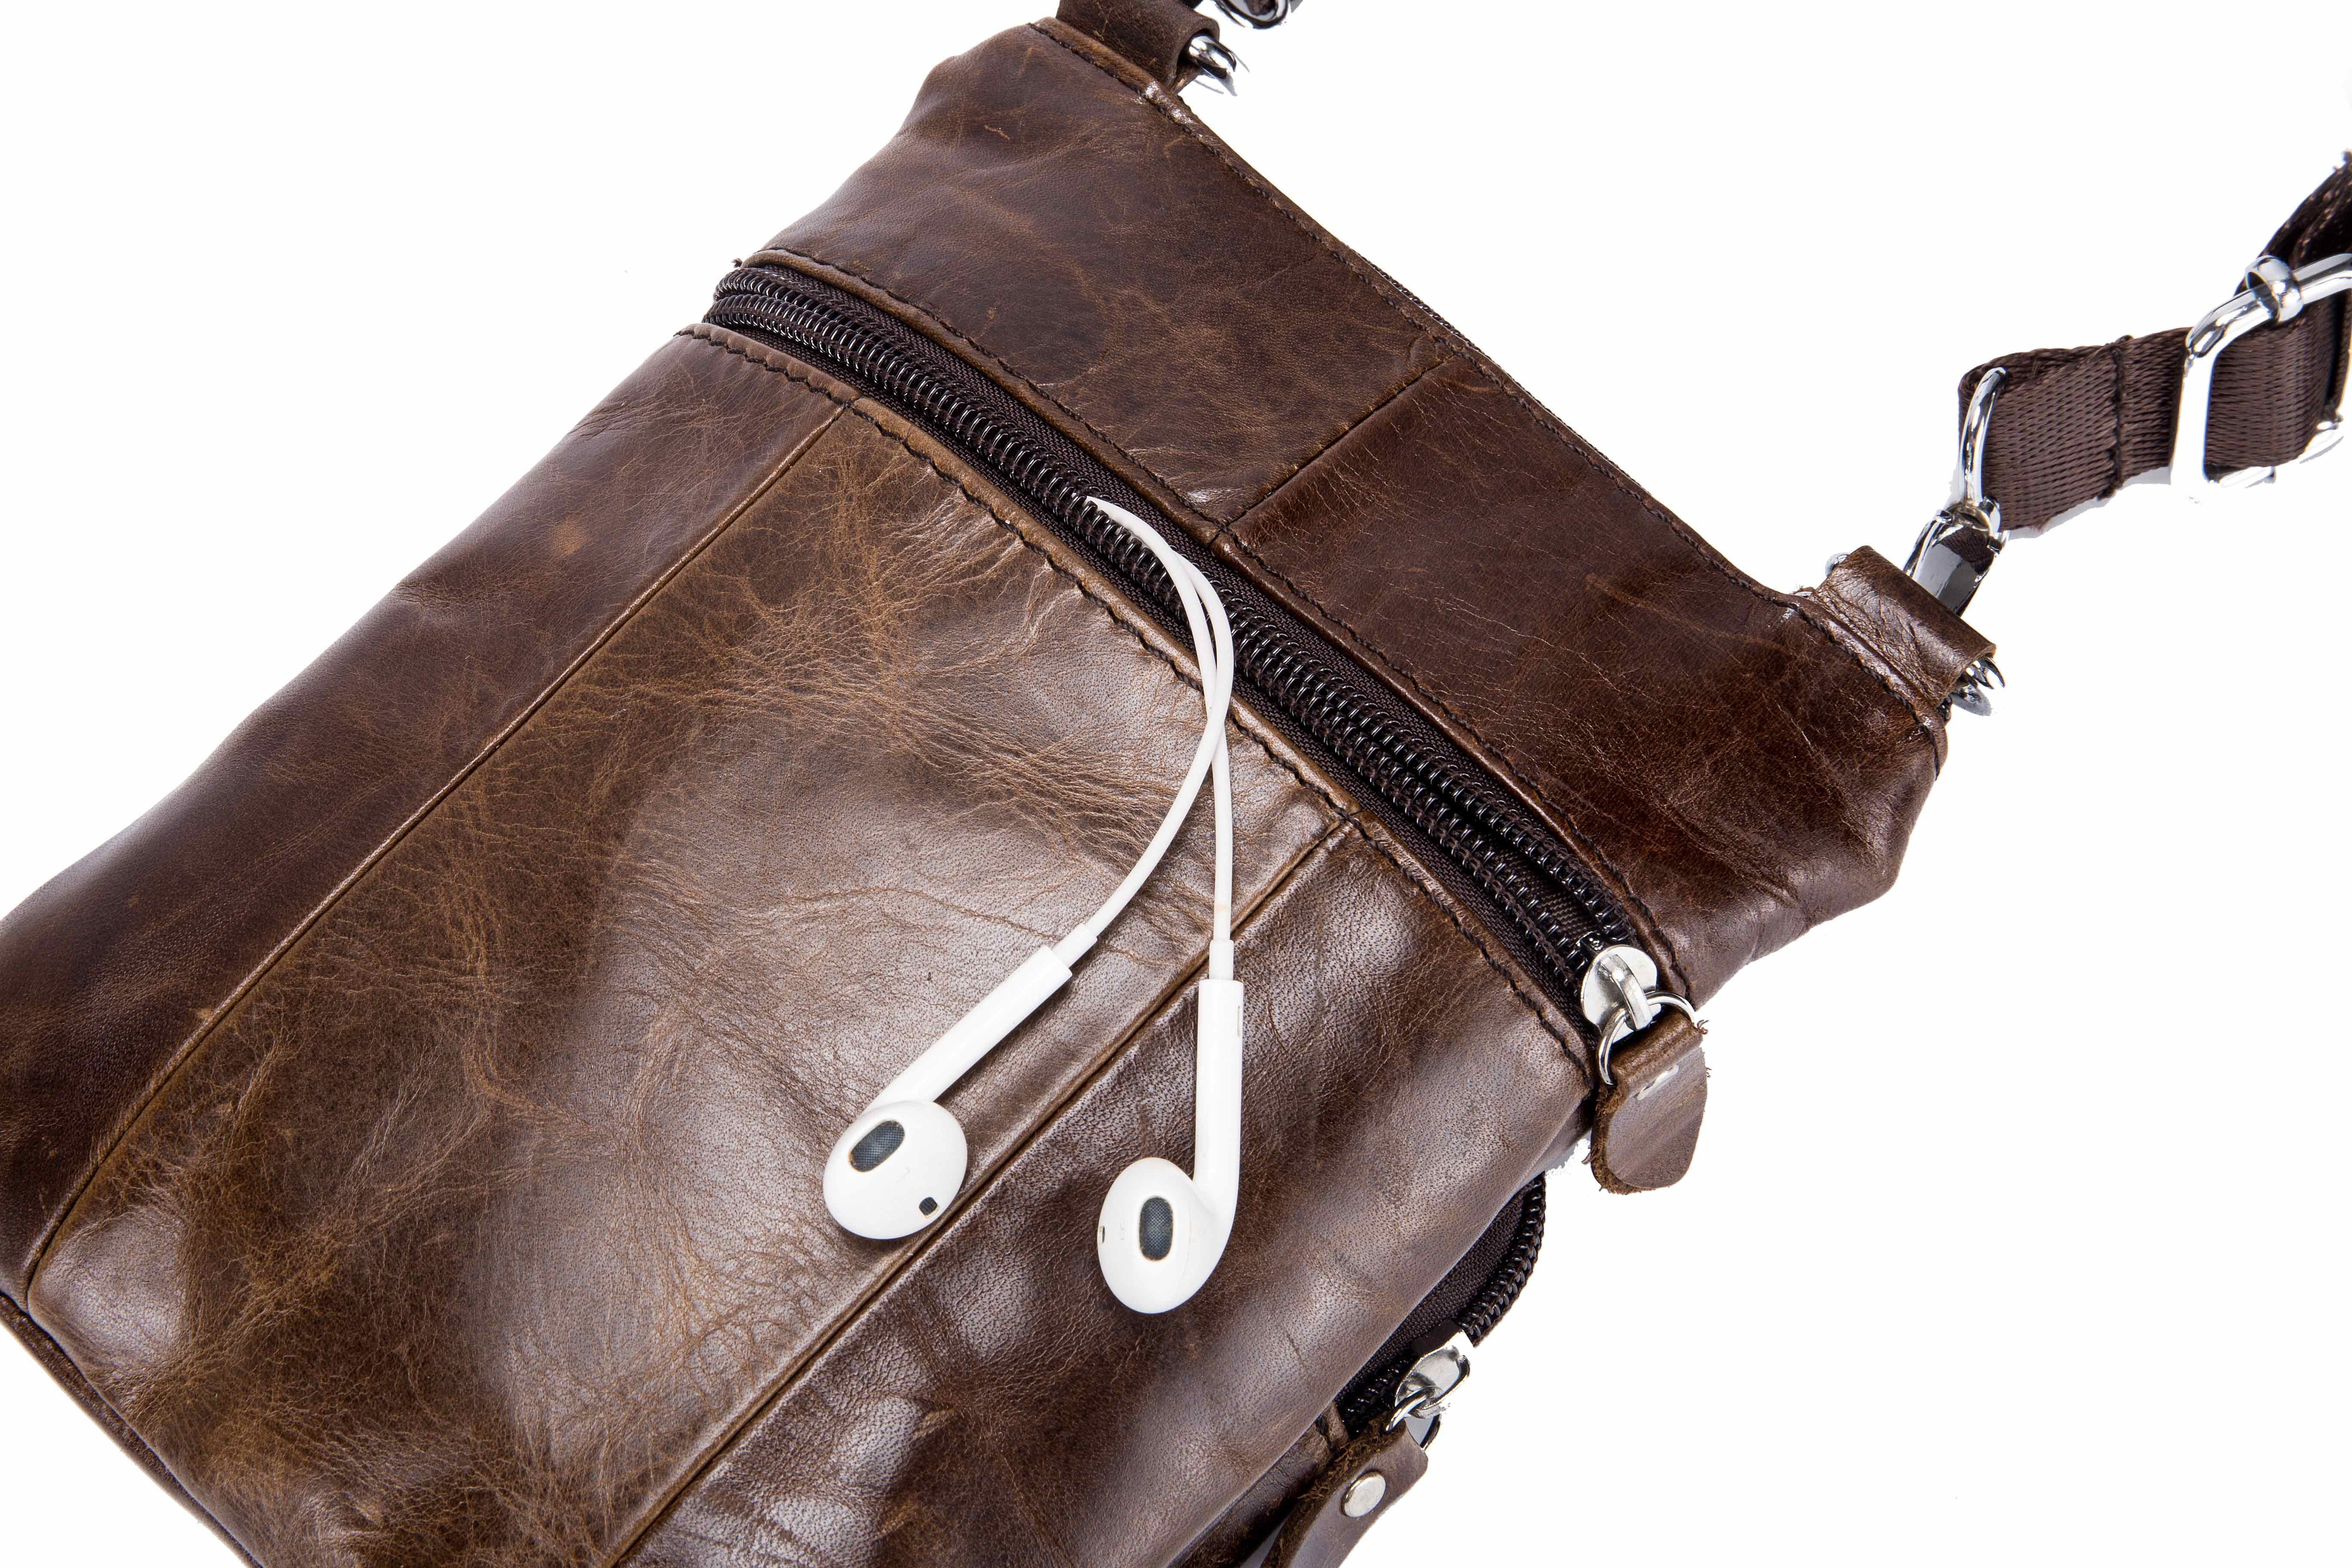 BULLCAPTAIN LEATHER SMALL MINIMALIST SHOULDER BAG FOR OUTING - 084